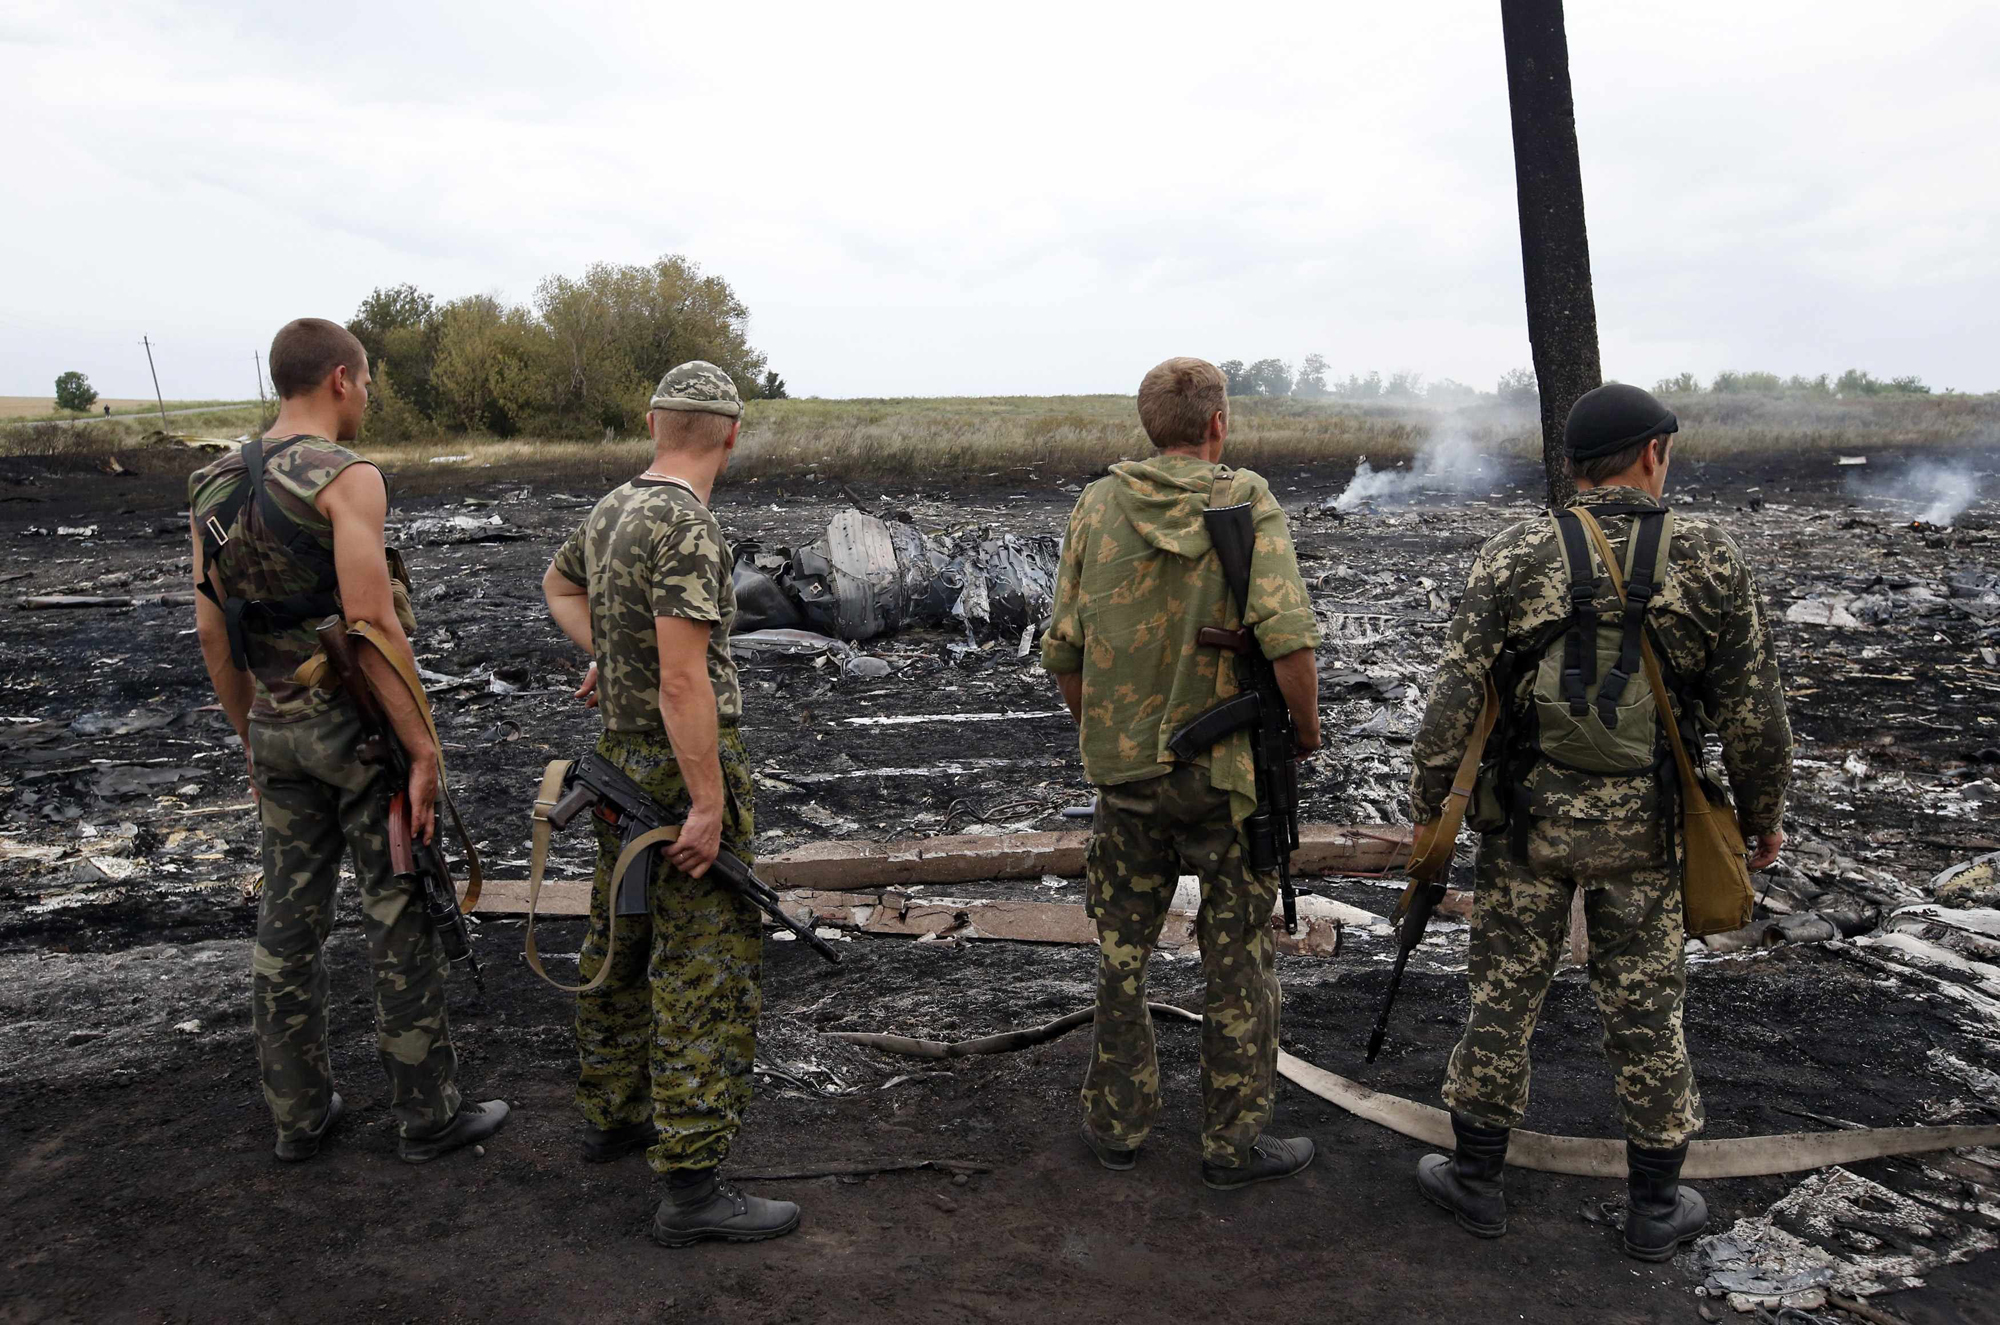 Armed pro-Russian separatists stand at the site of a Malaysia Airlines Boeing 777 plane crash near the settlement of Grabovo in the Donetsk region, July 17, 2014.